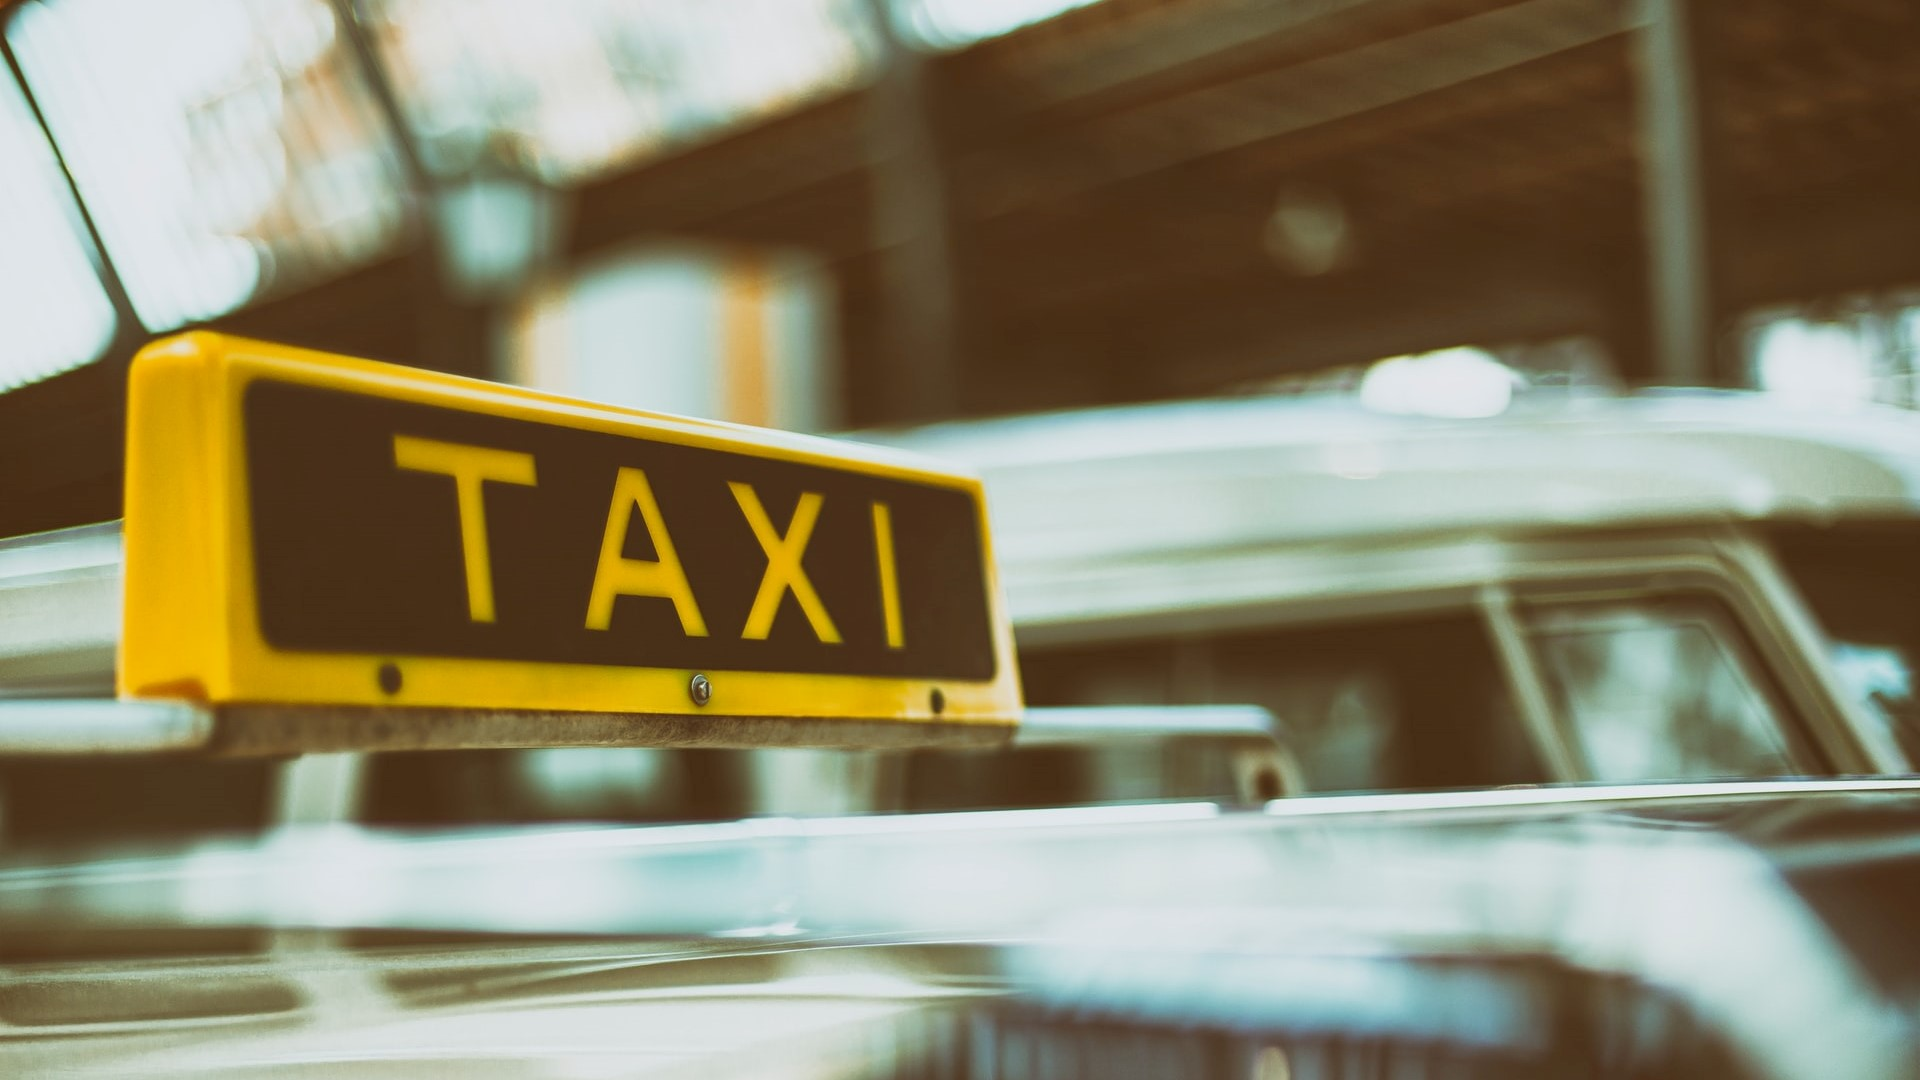 Lifestyle News - Amsterdam Taxi